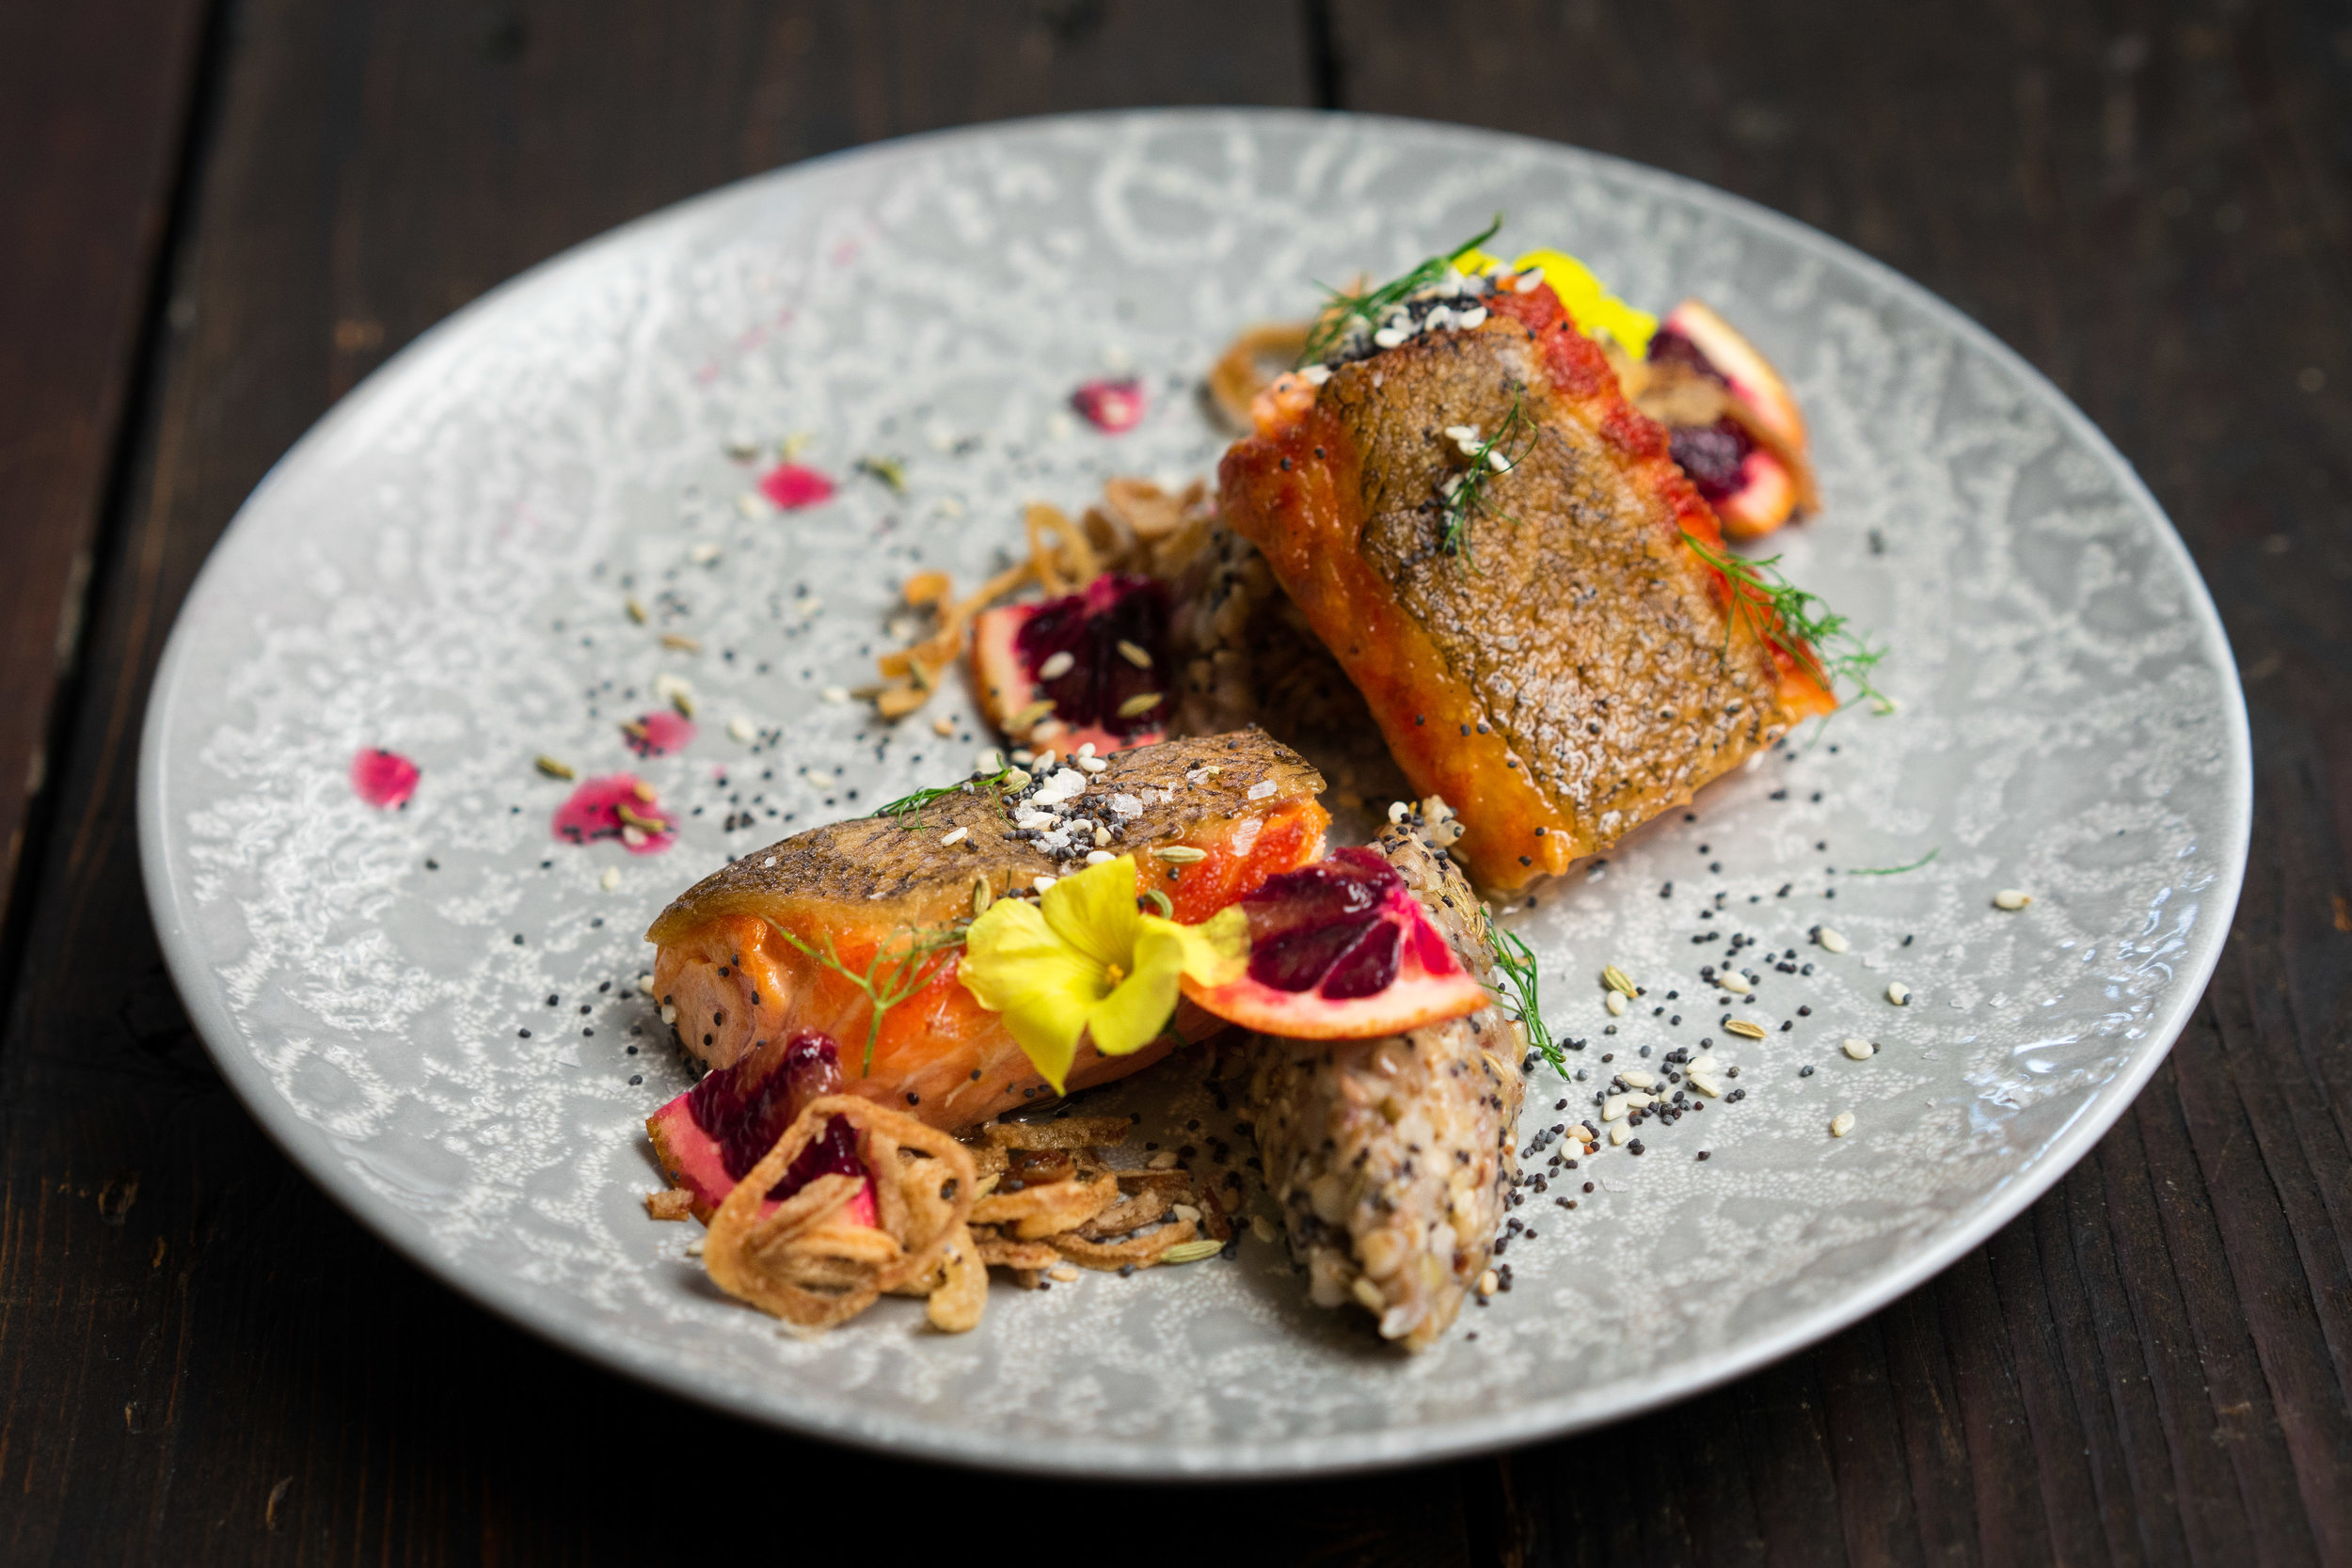 Crispy Skin Roasted Salmon